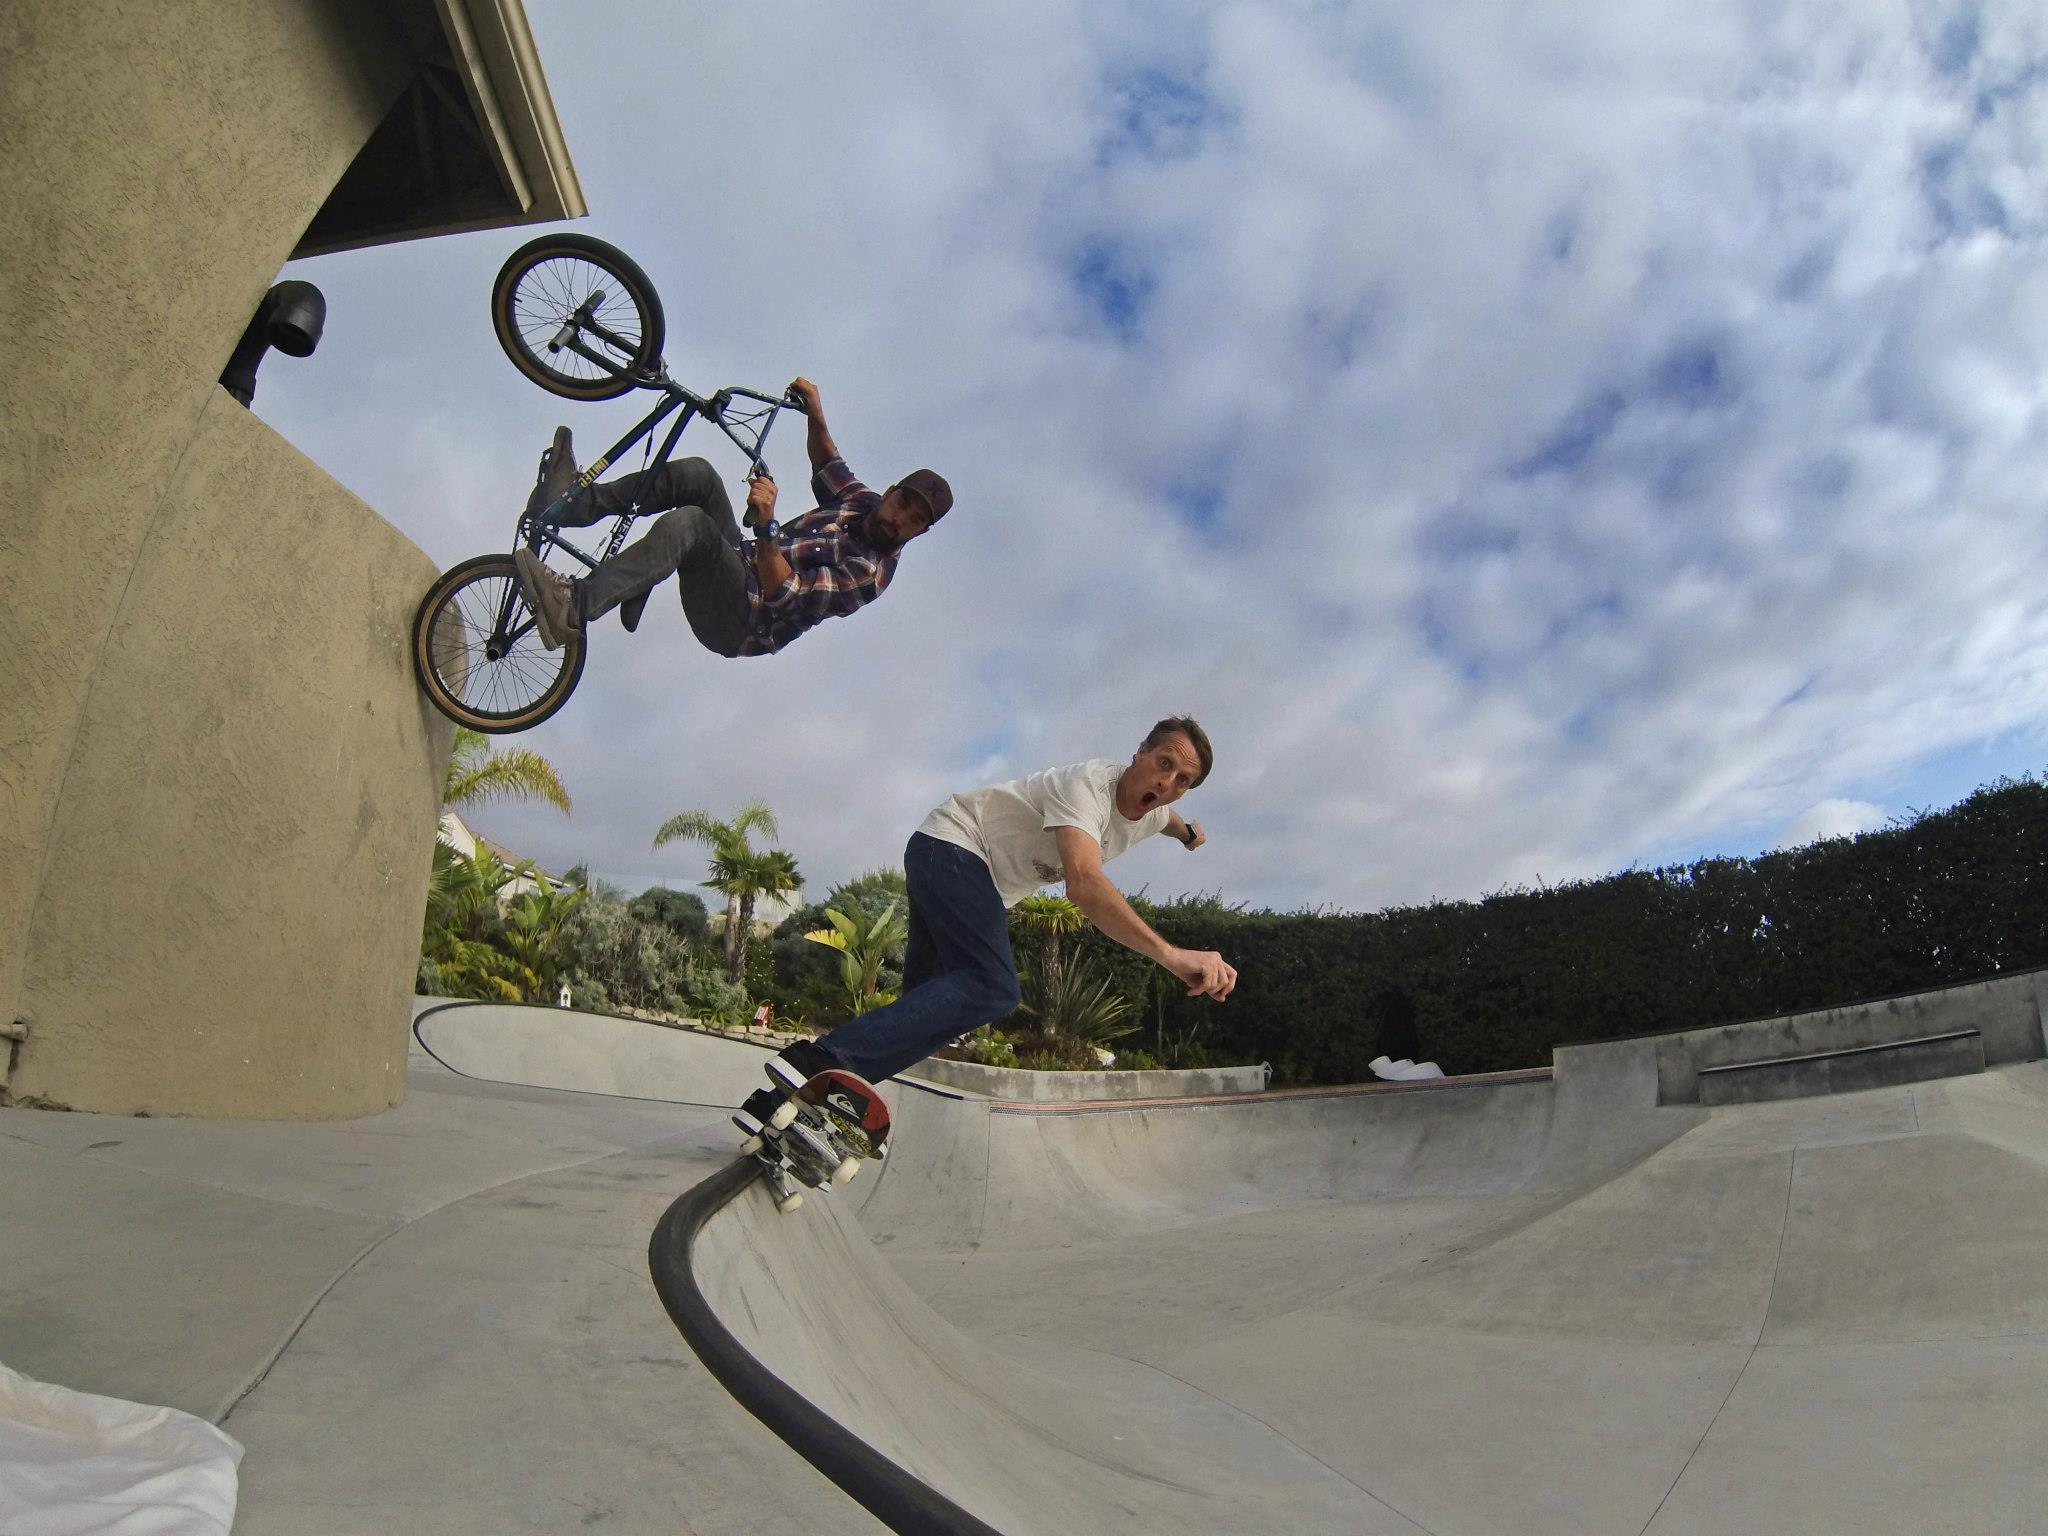 "BMX GoPro athlete Mike Escamilla and a friend shredding at the skate park. Mike says, ""Having some fun with buddy Tony Hawk in his backyard, shot using the HERO3 and the wifi remote..."""